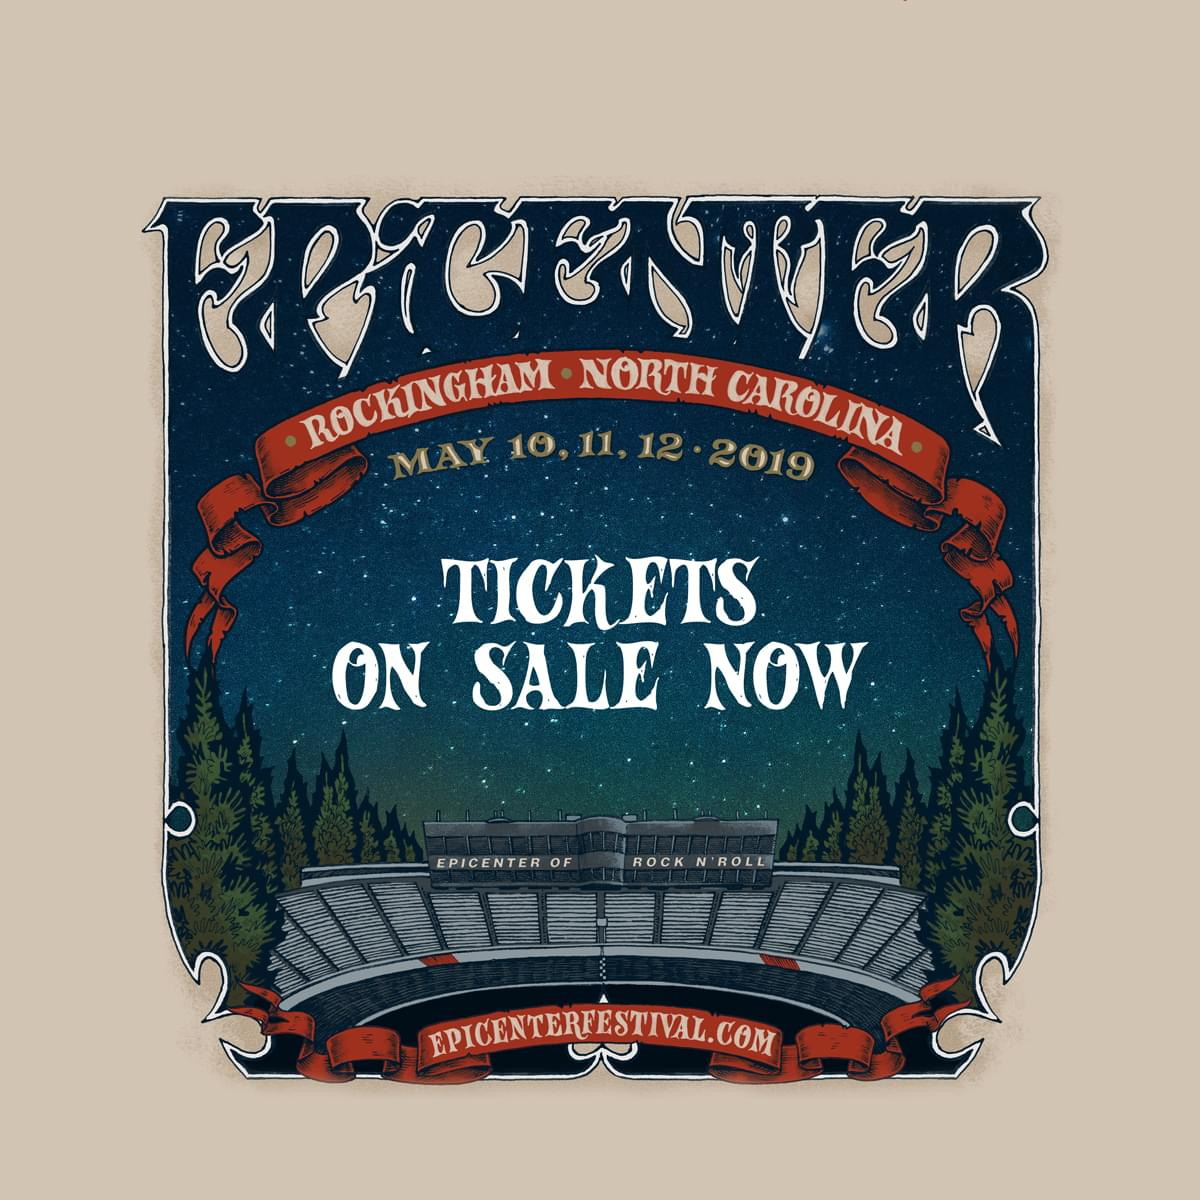 May 10-12 – Epicenter Festival